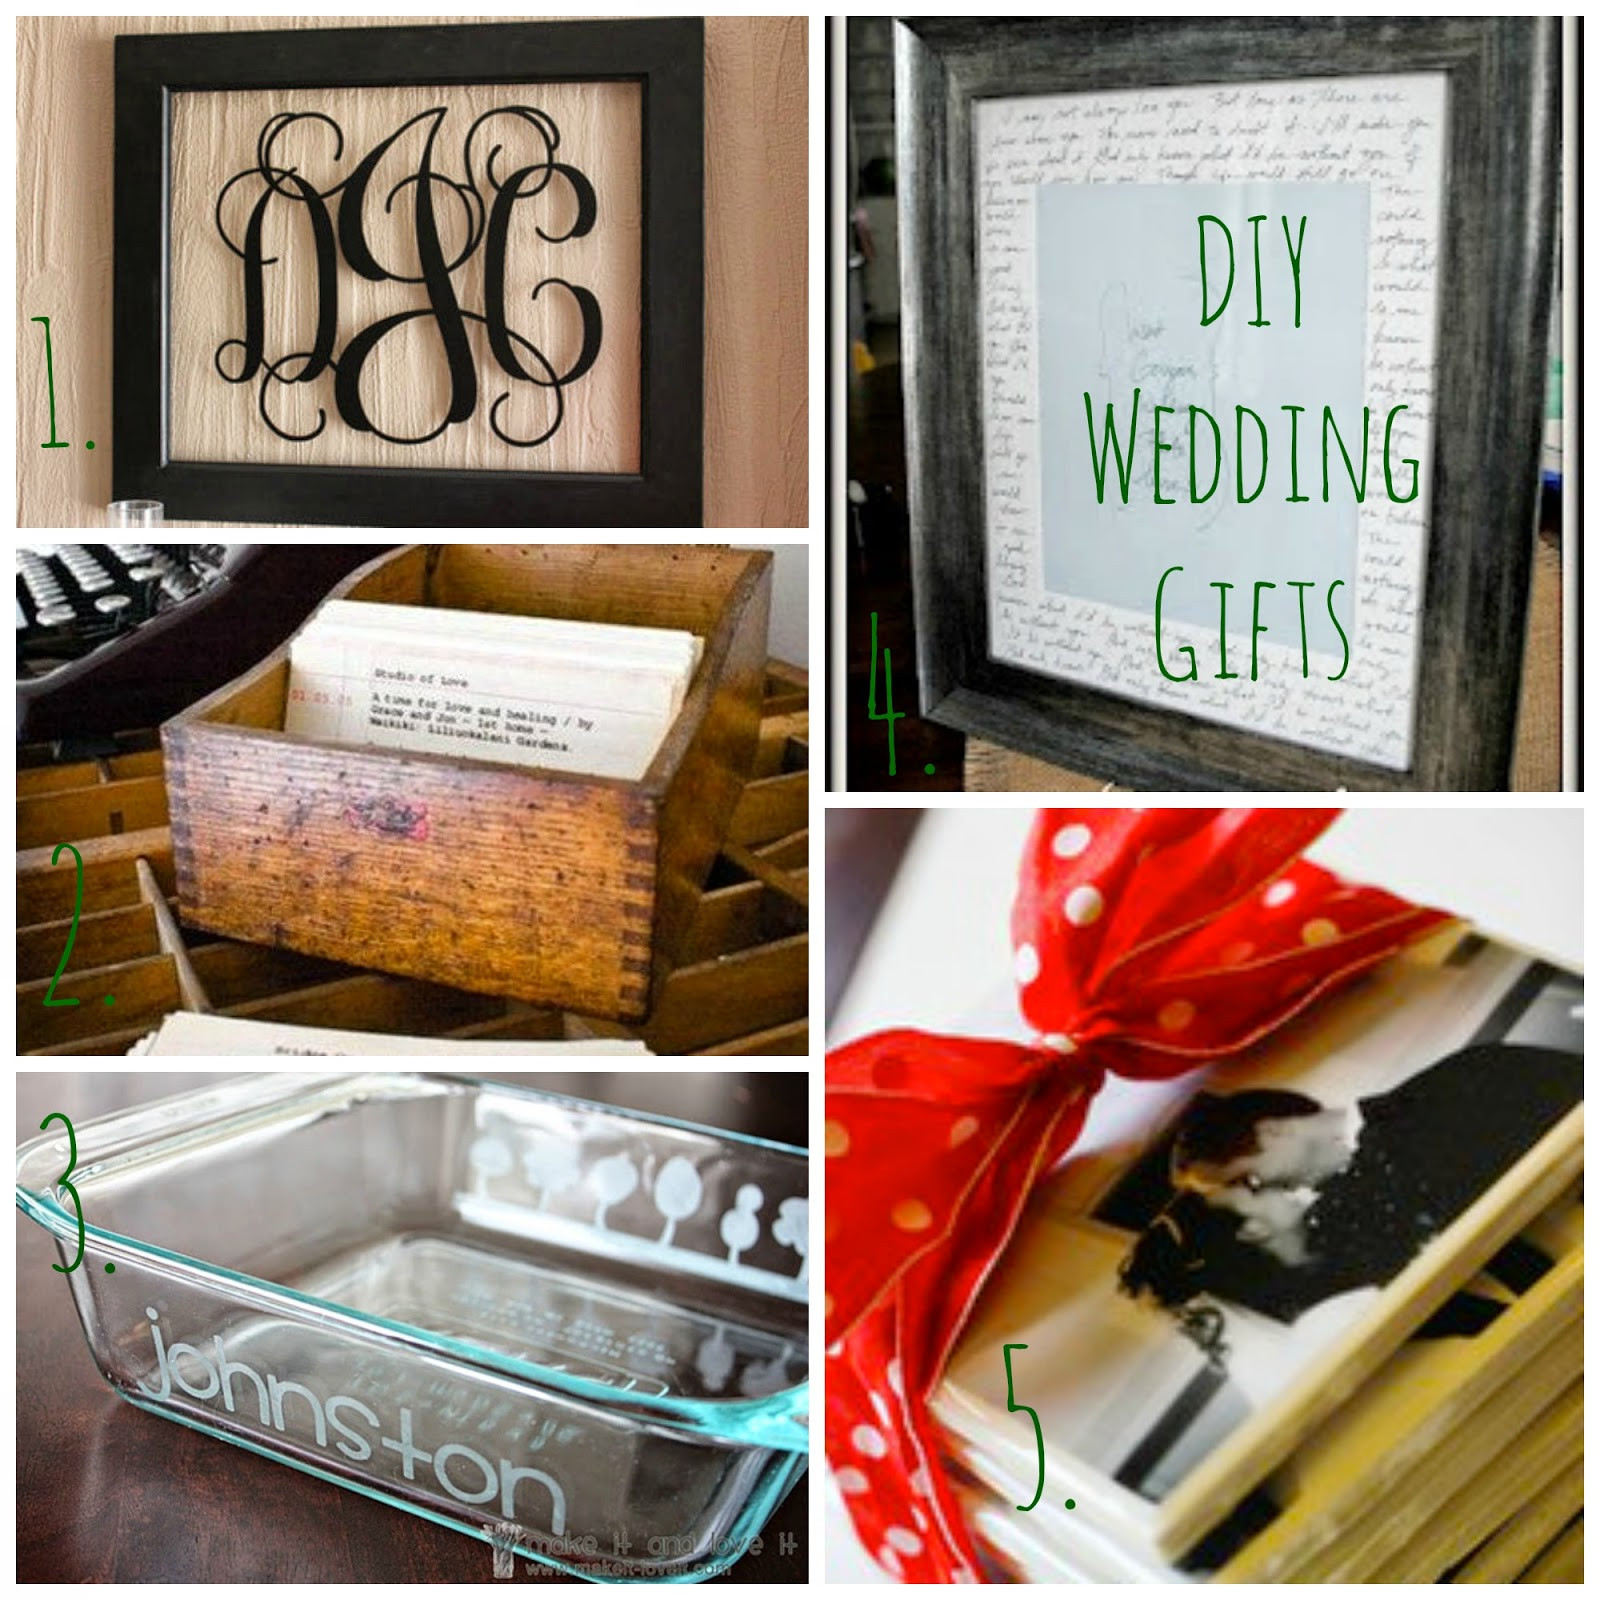 Best ideas about Gift Ideas For Couple . Save or Pin Gift Ideas For Young Couples Now.